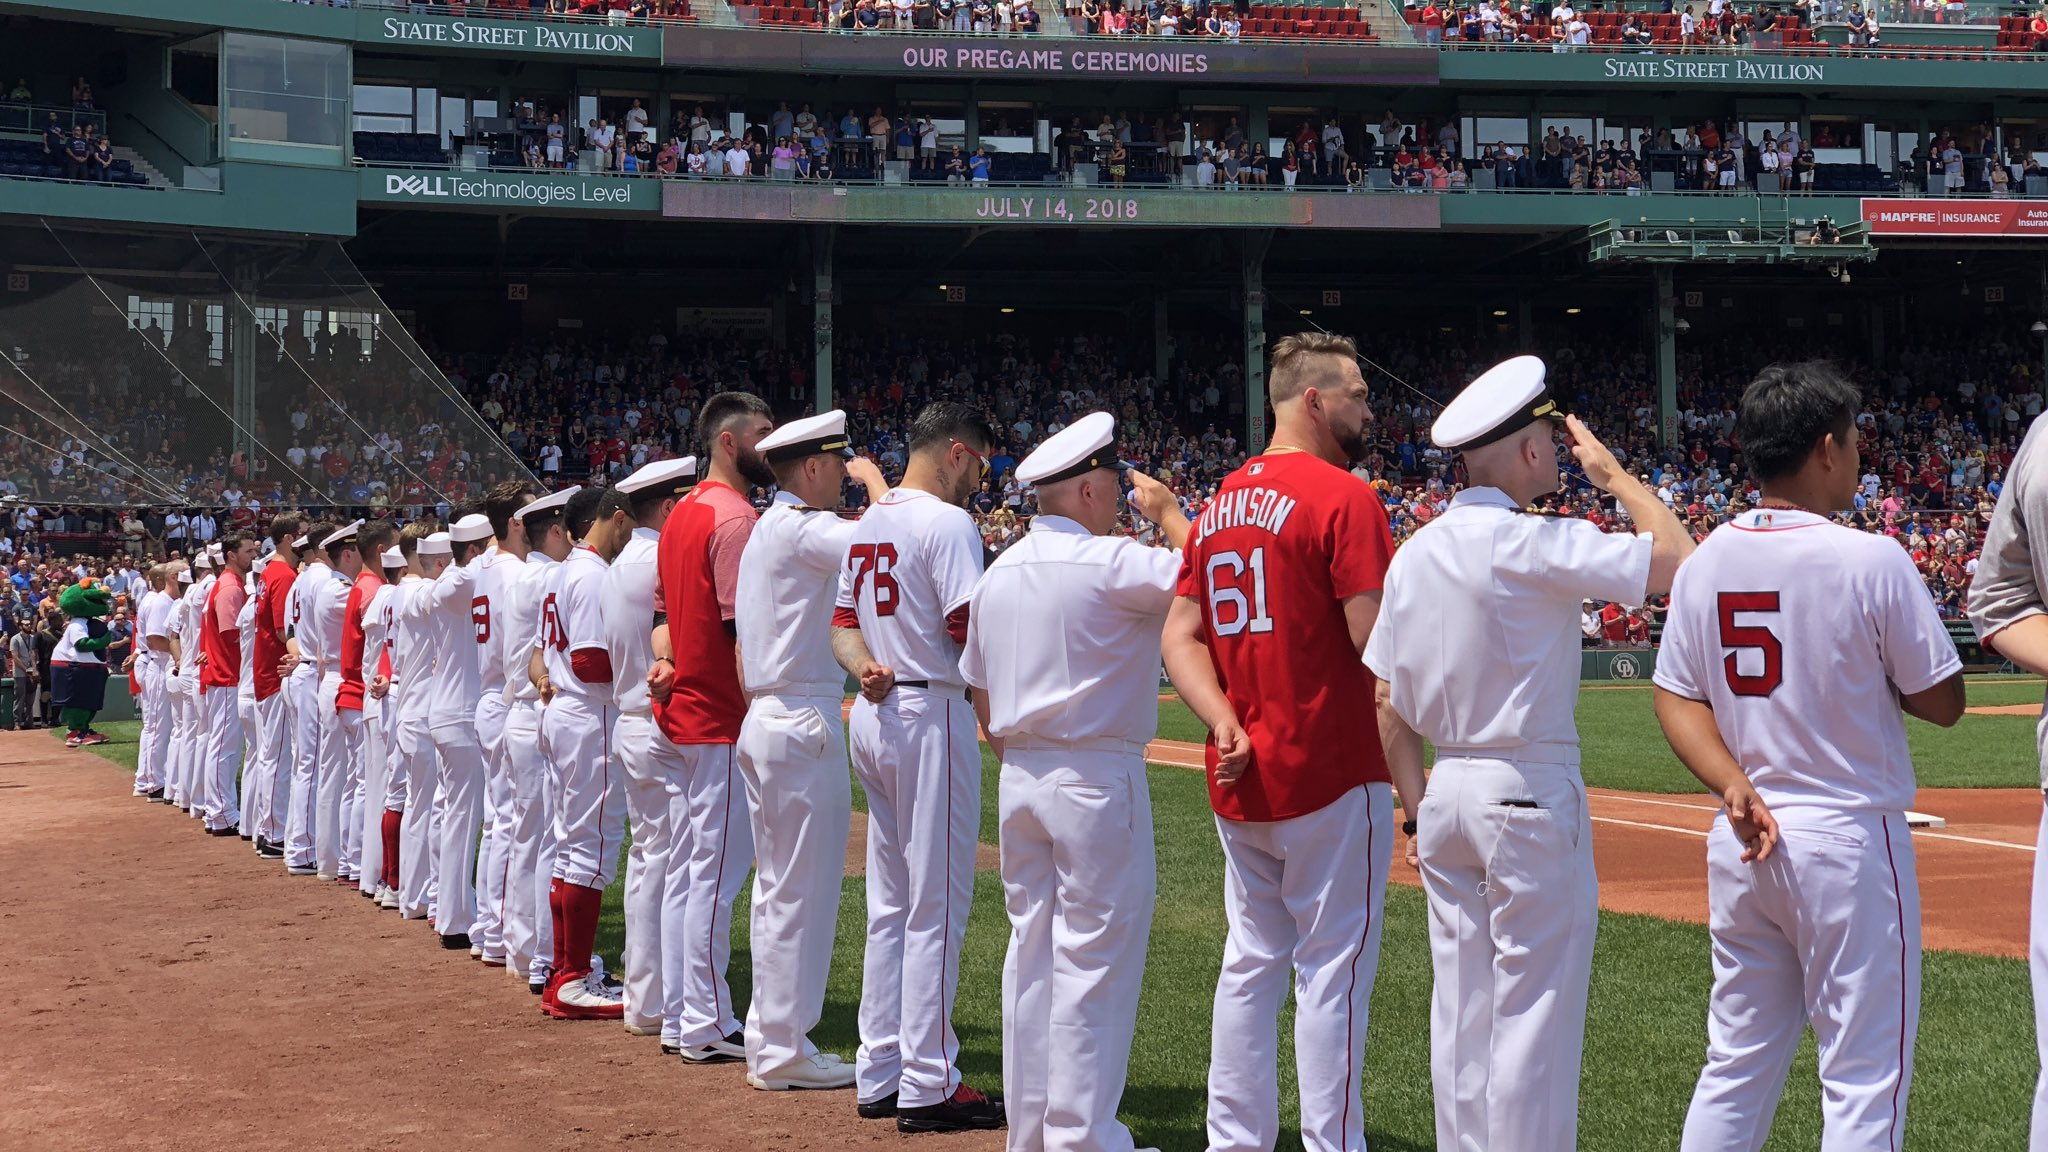 Joining us for the national anthem are the sailors from the crew of the U.S.S. Virginia! ���� https://t.co/rT8UwBAtVC